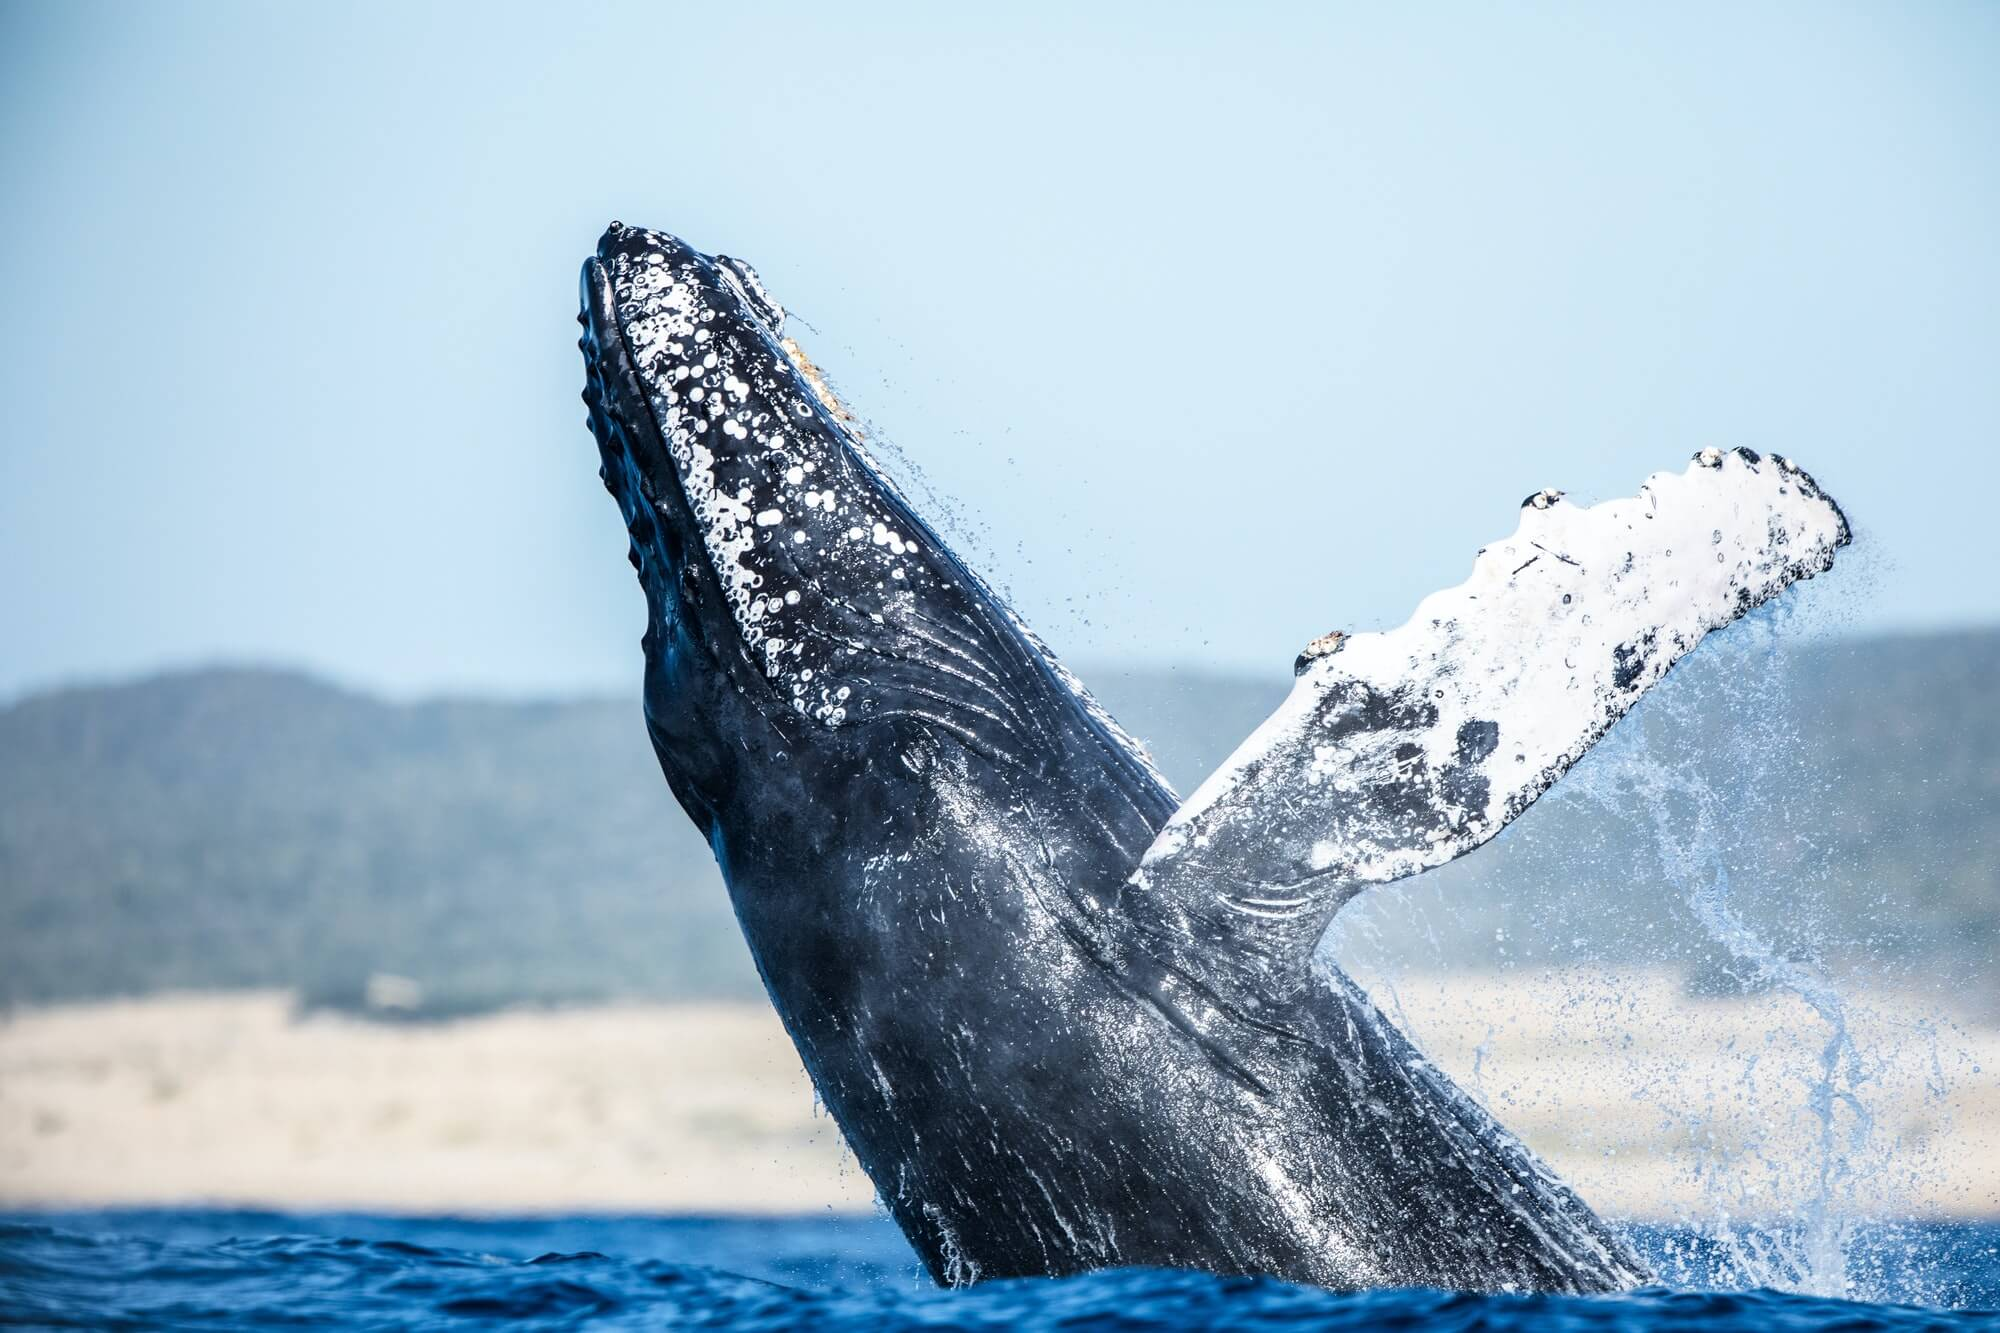 A humpback whale shows the grace of one of the largest animals in the world